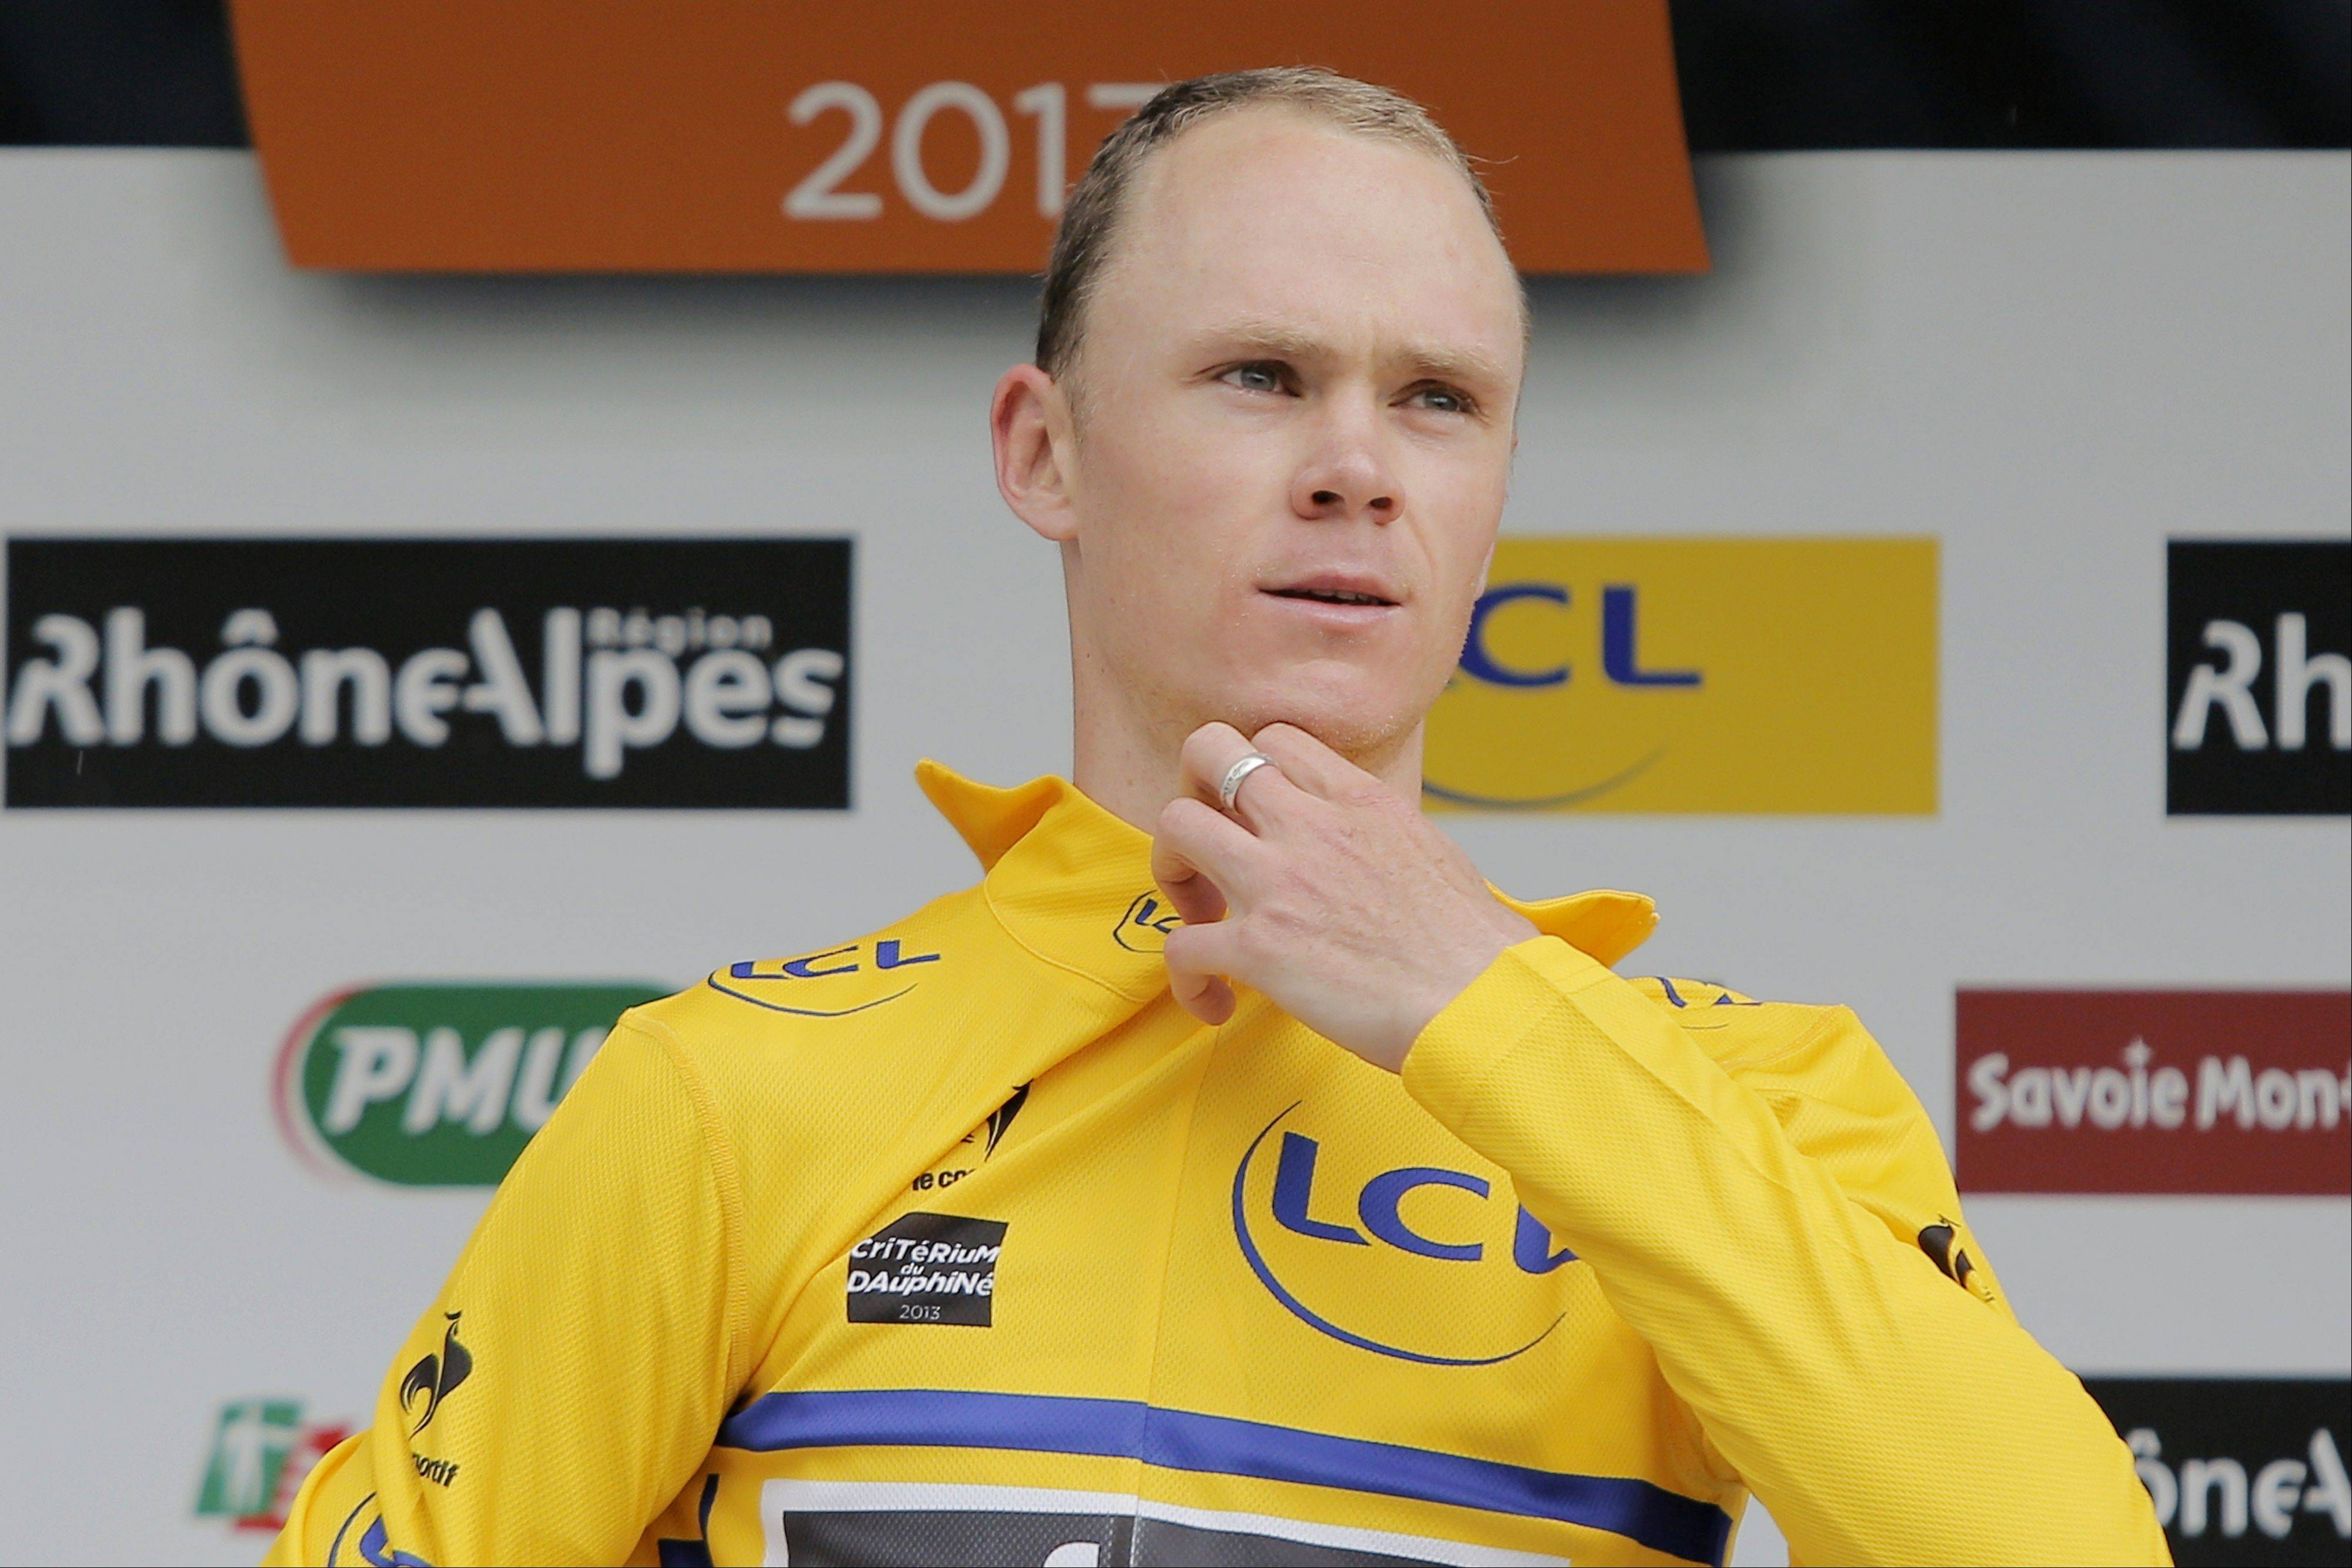 Chris Froome is the heir apparent to 2012 Tour de France champ Bradley Wiggins on Team Sky.